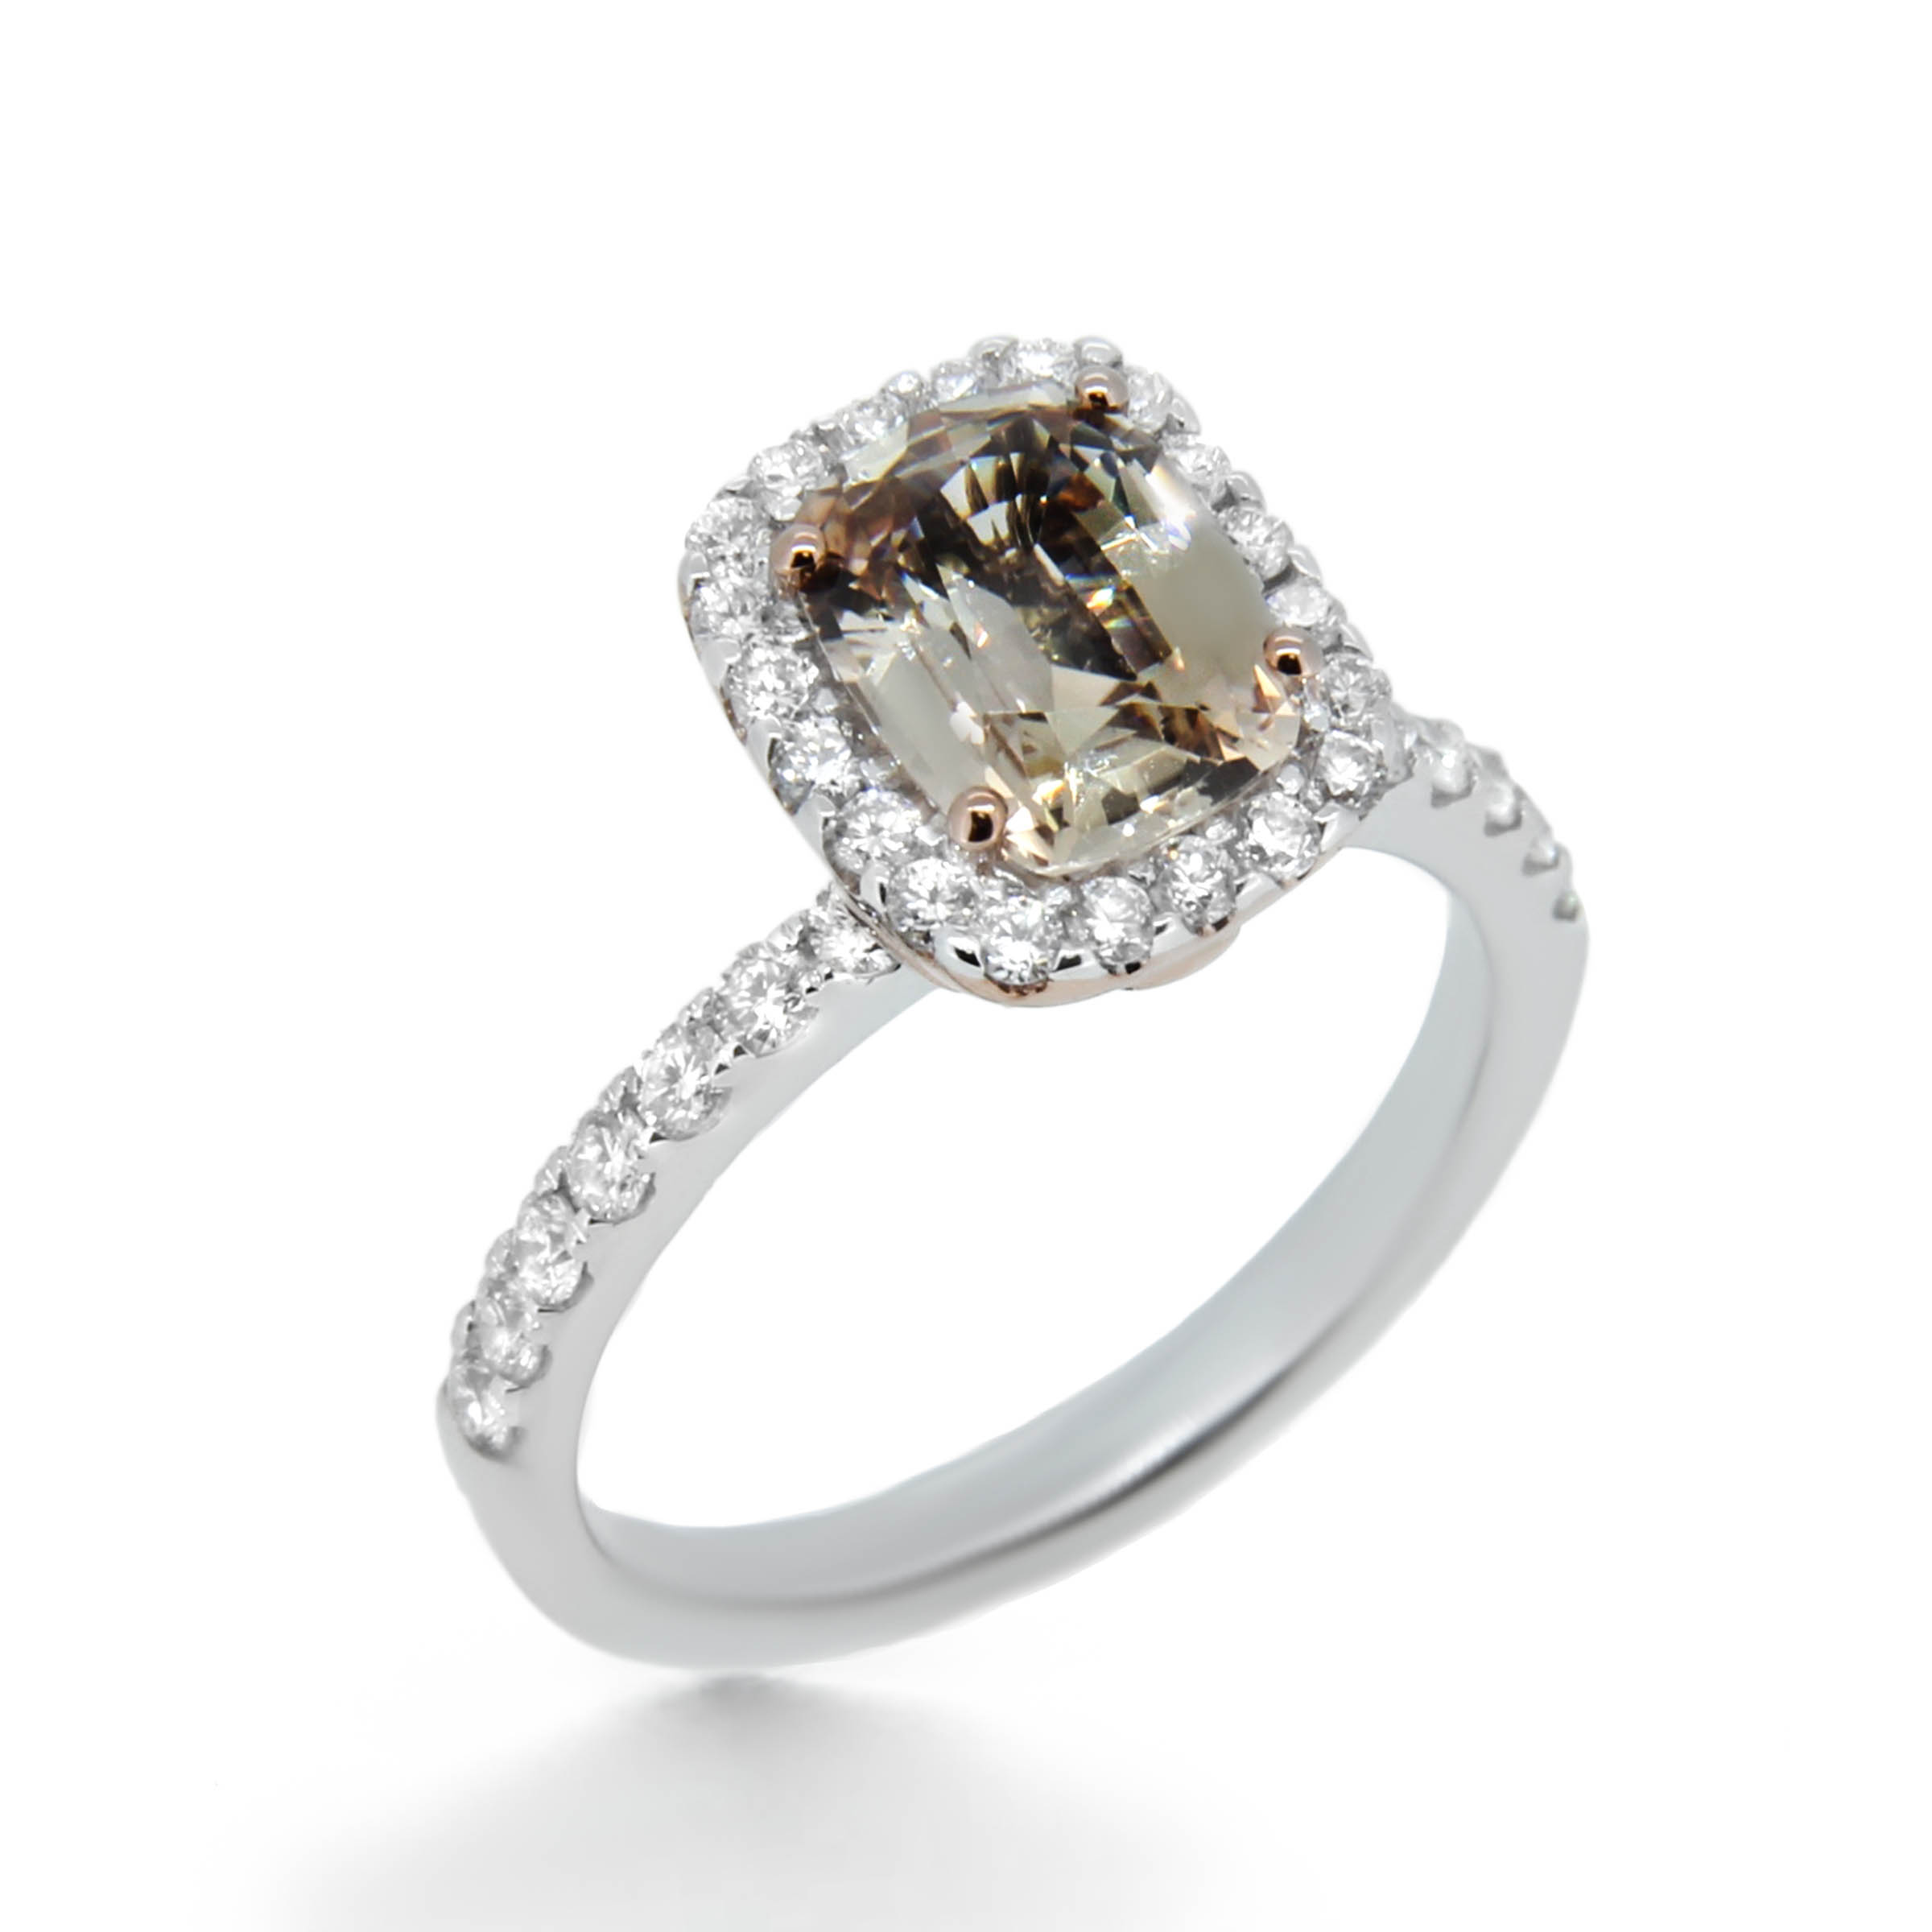 Gemstone rings haywards bespoke jewellery champagne sapphire engagement ring junglespirit Images